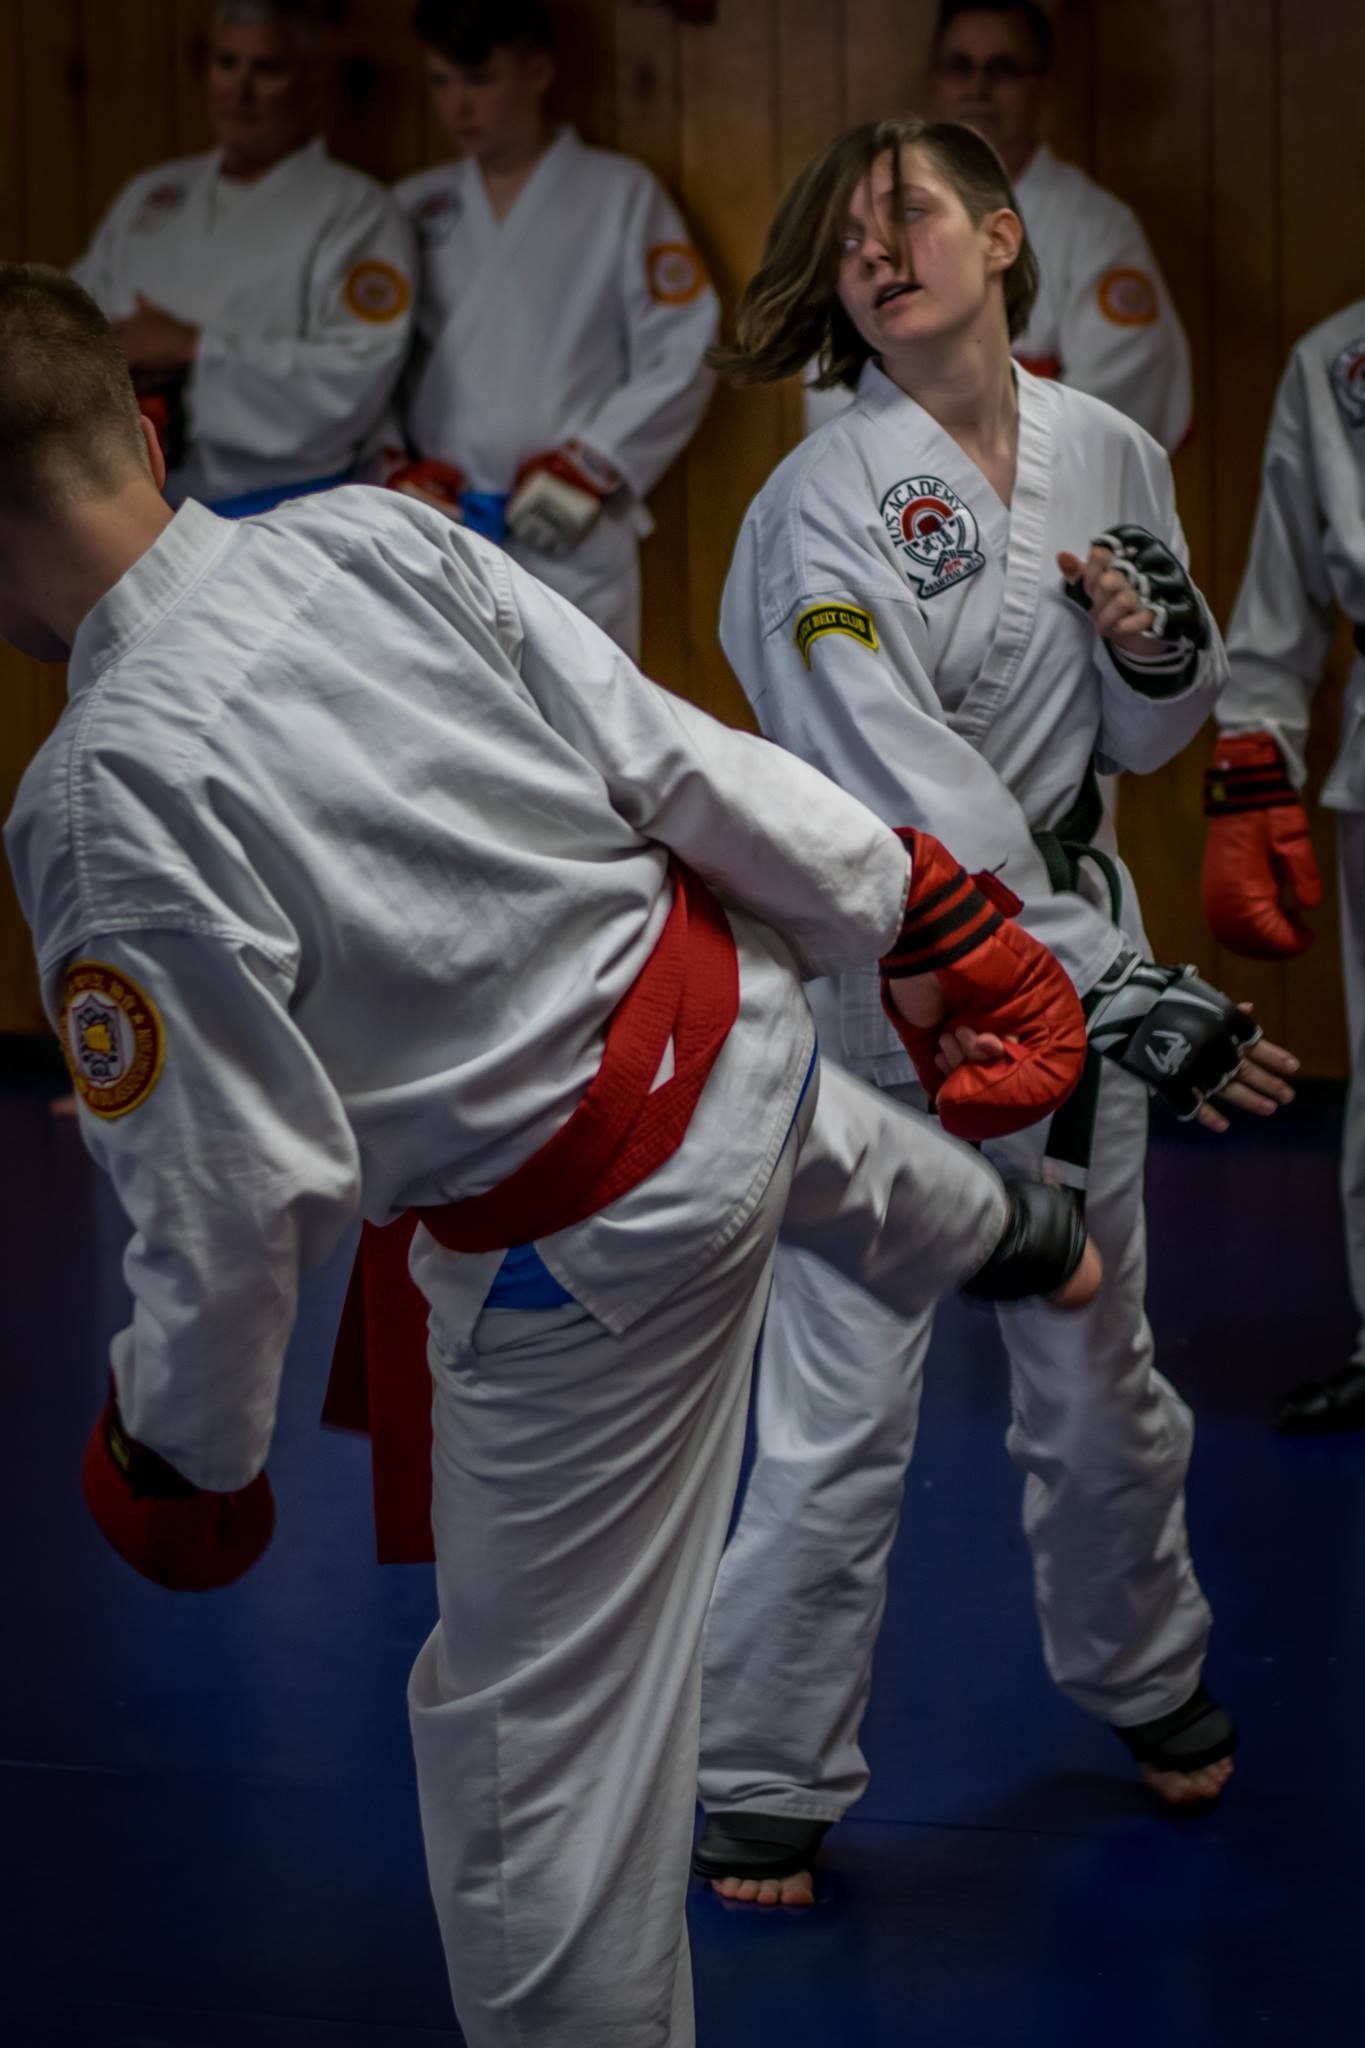 Dani and Kyle sparring in May 2017 Testing